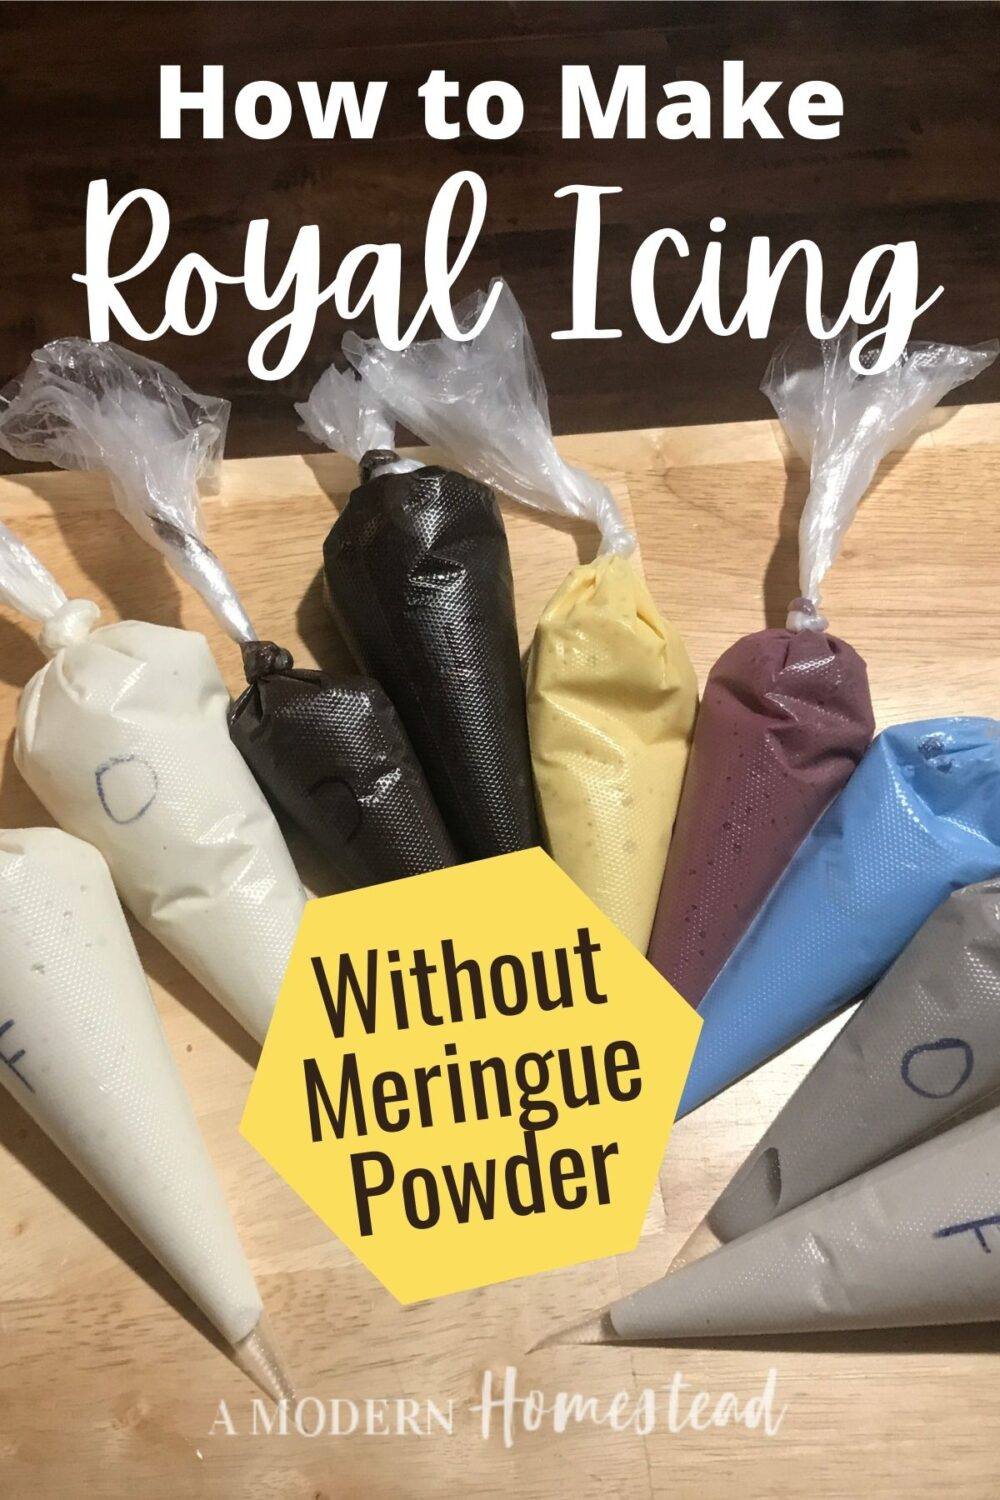 9 different colors of homemade royal icings in piping bags